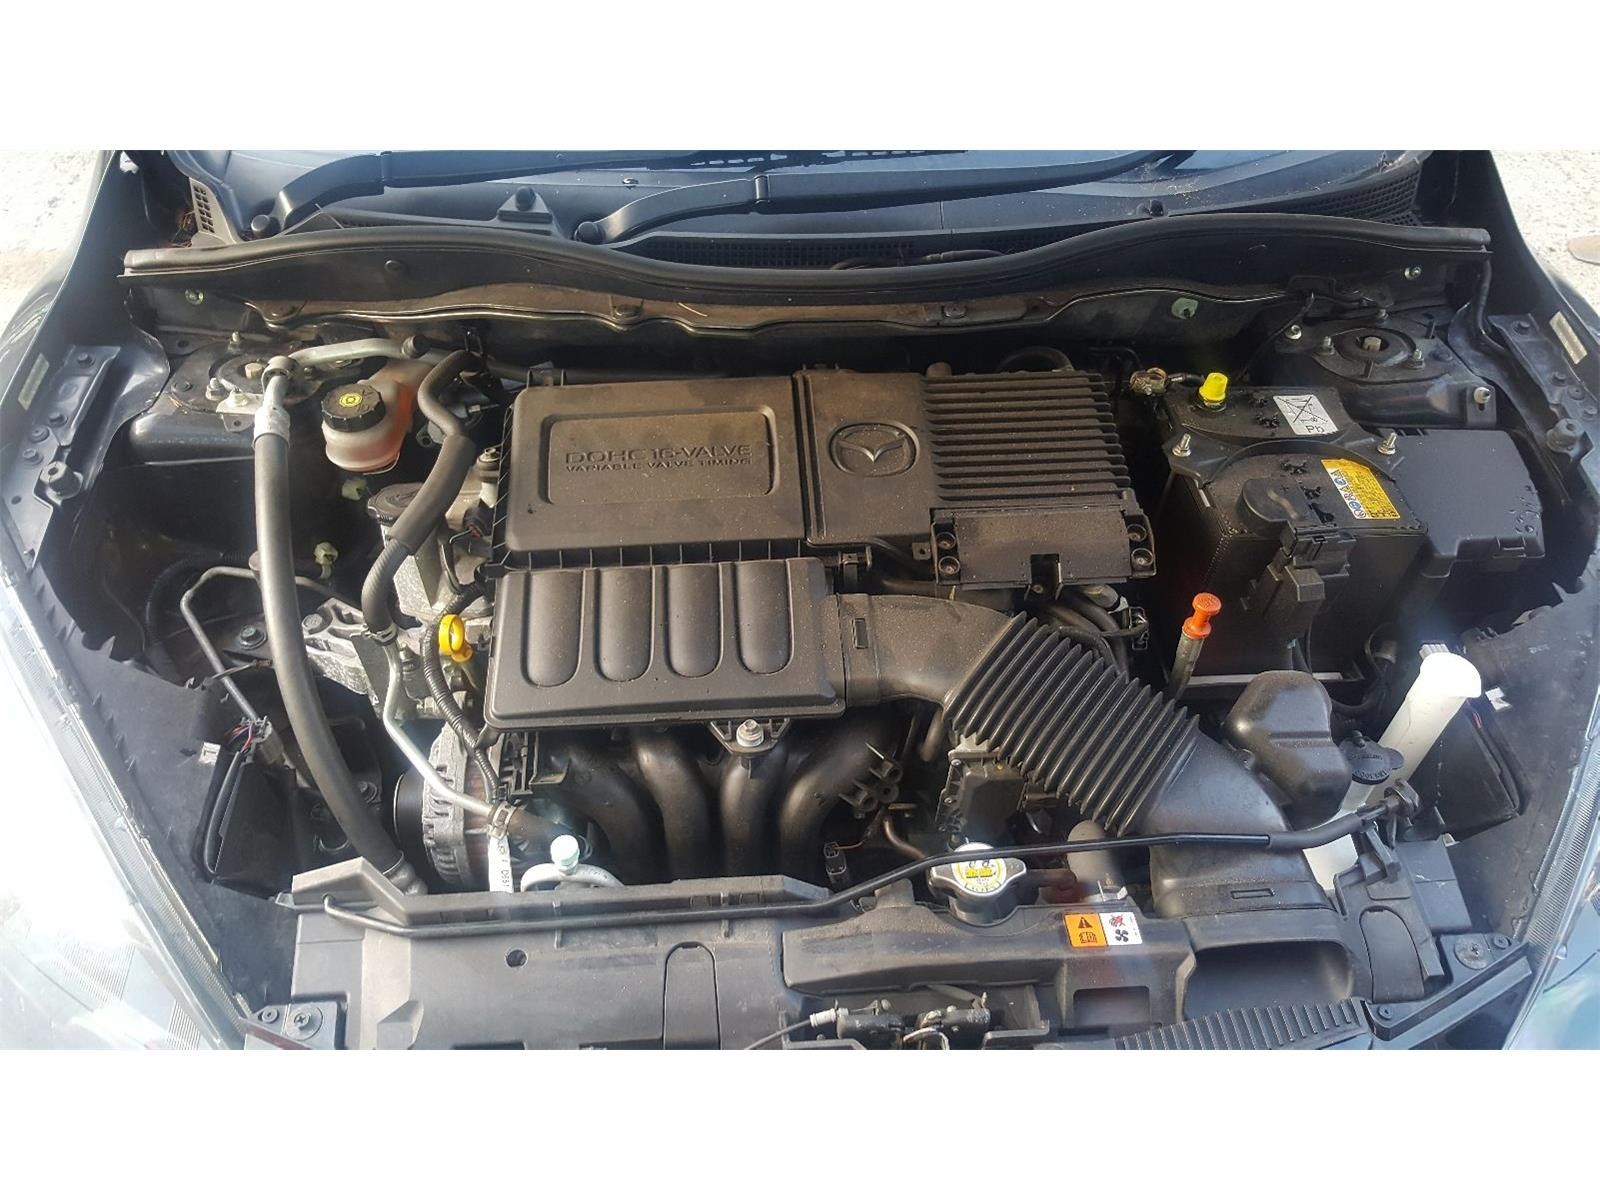 Mazda 2 2008 To 2015 Ts2 5 Door Hatchback Scrap Salvage Car For Corsa B Fuse Box Removal Sale Auction Silverlake Autoparts